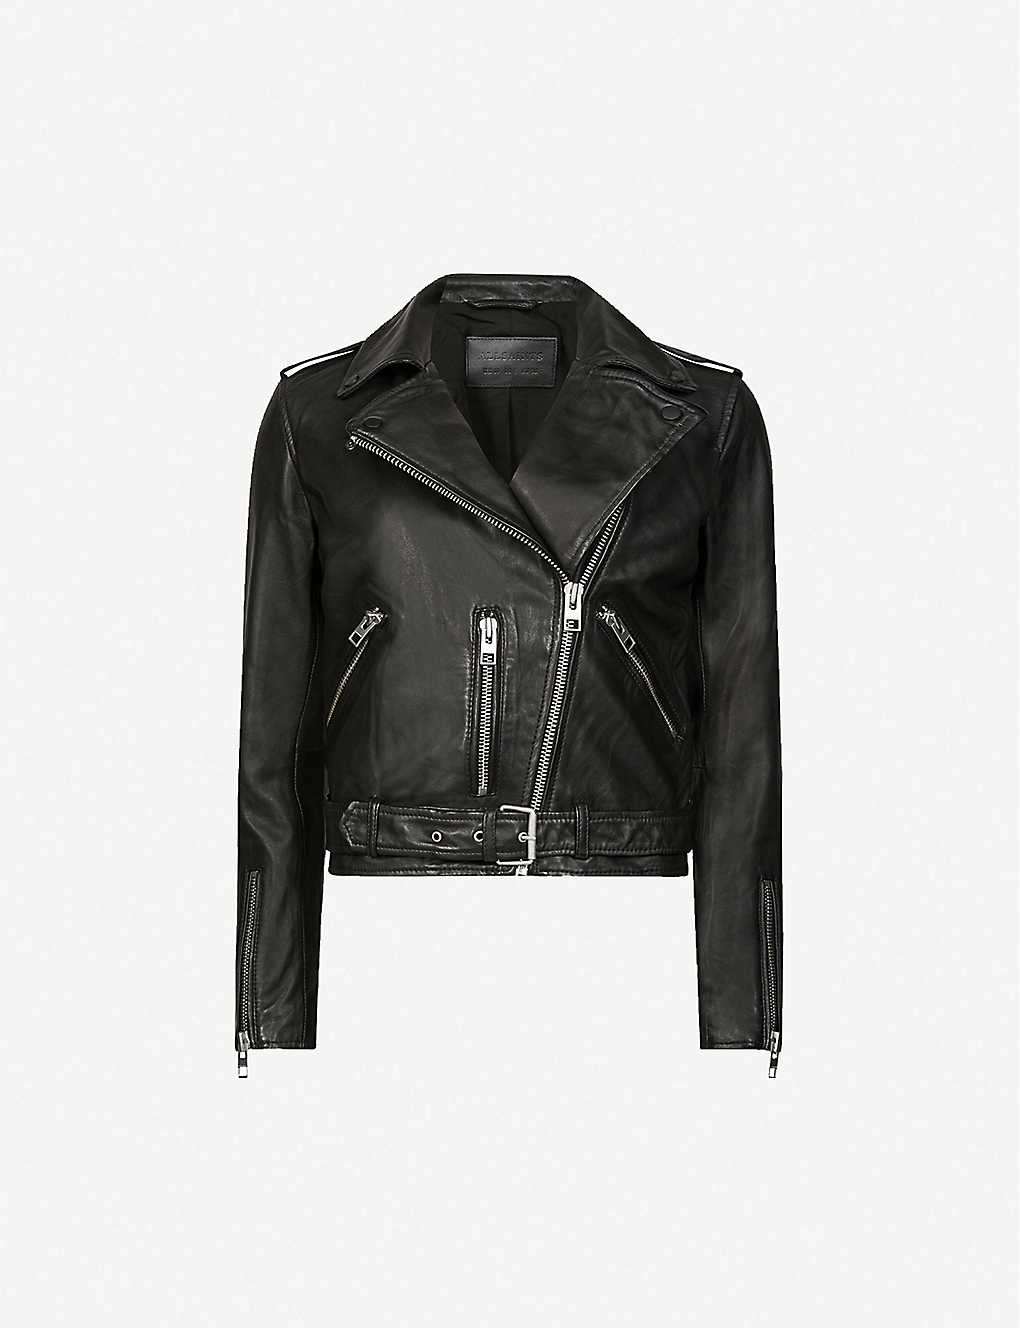 946a358eb956e ALLSAINTS - Balfern leather biker jacket | Selfridges.com